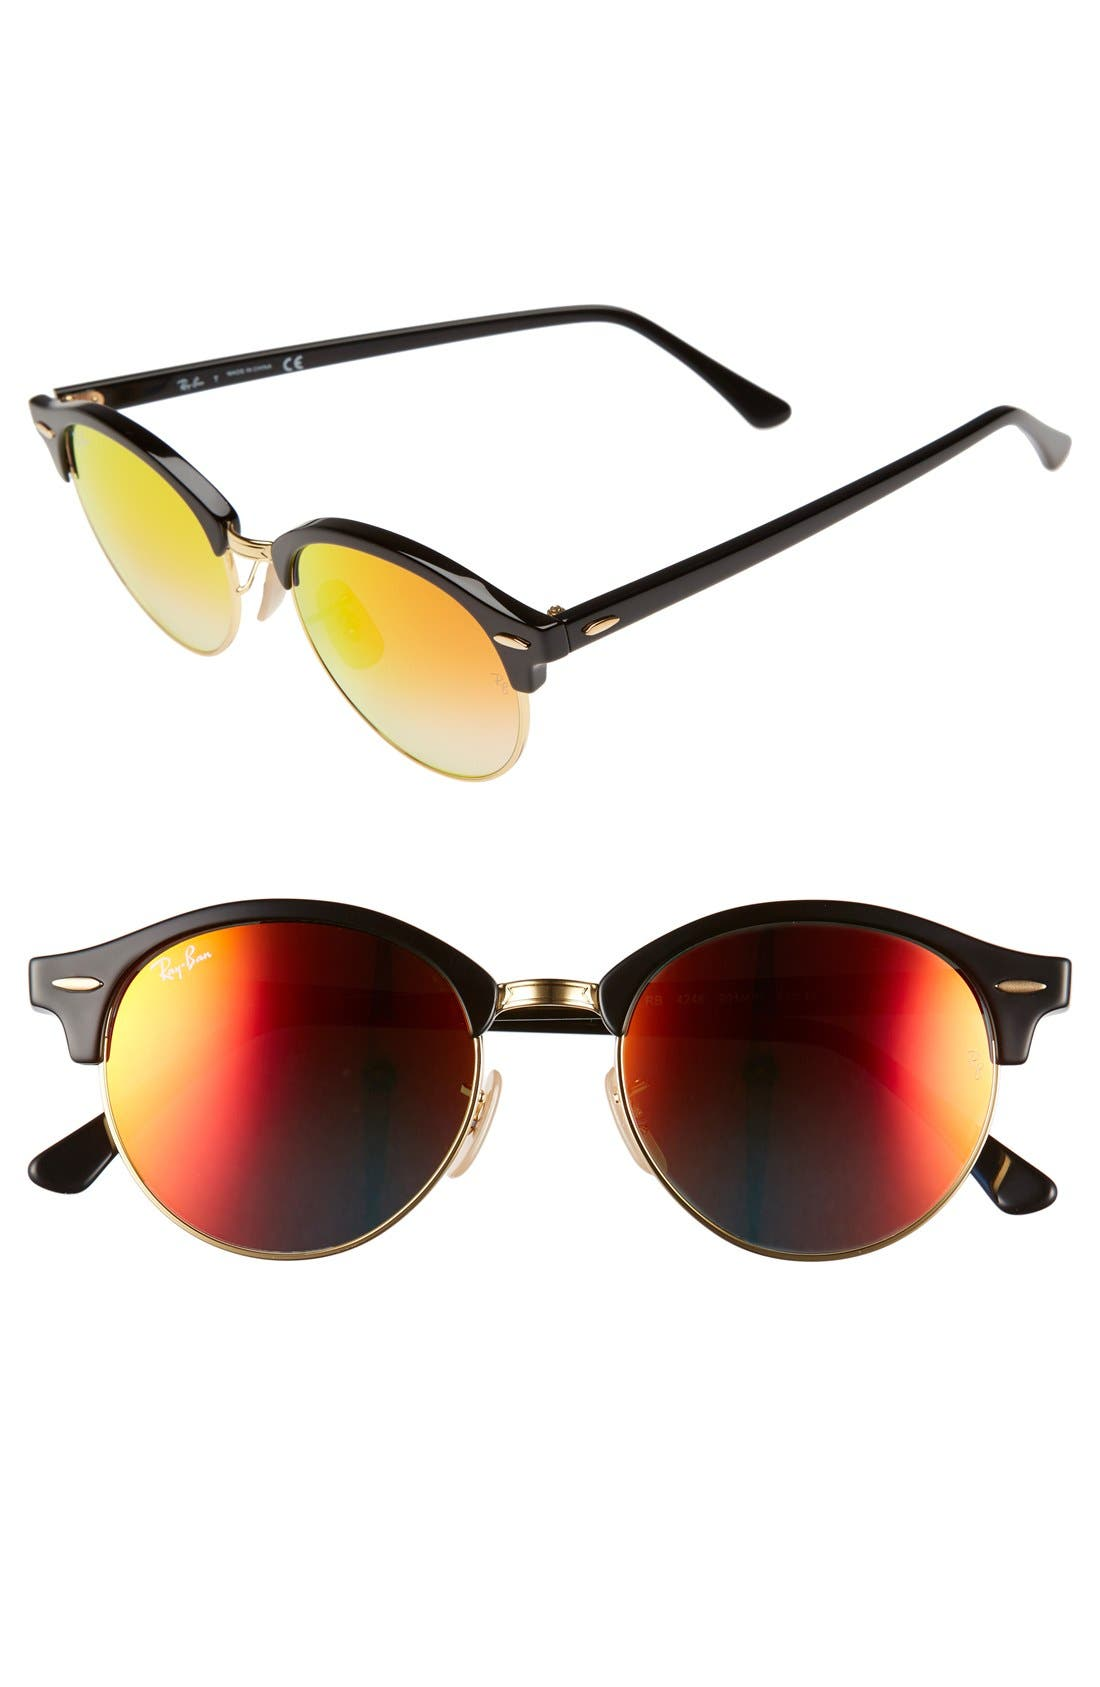 Main Image - Ray-Ban 'Club' 51mm Sunglasses (Nordstrom Exclusive)